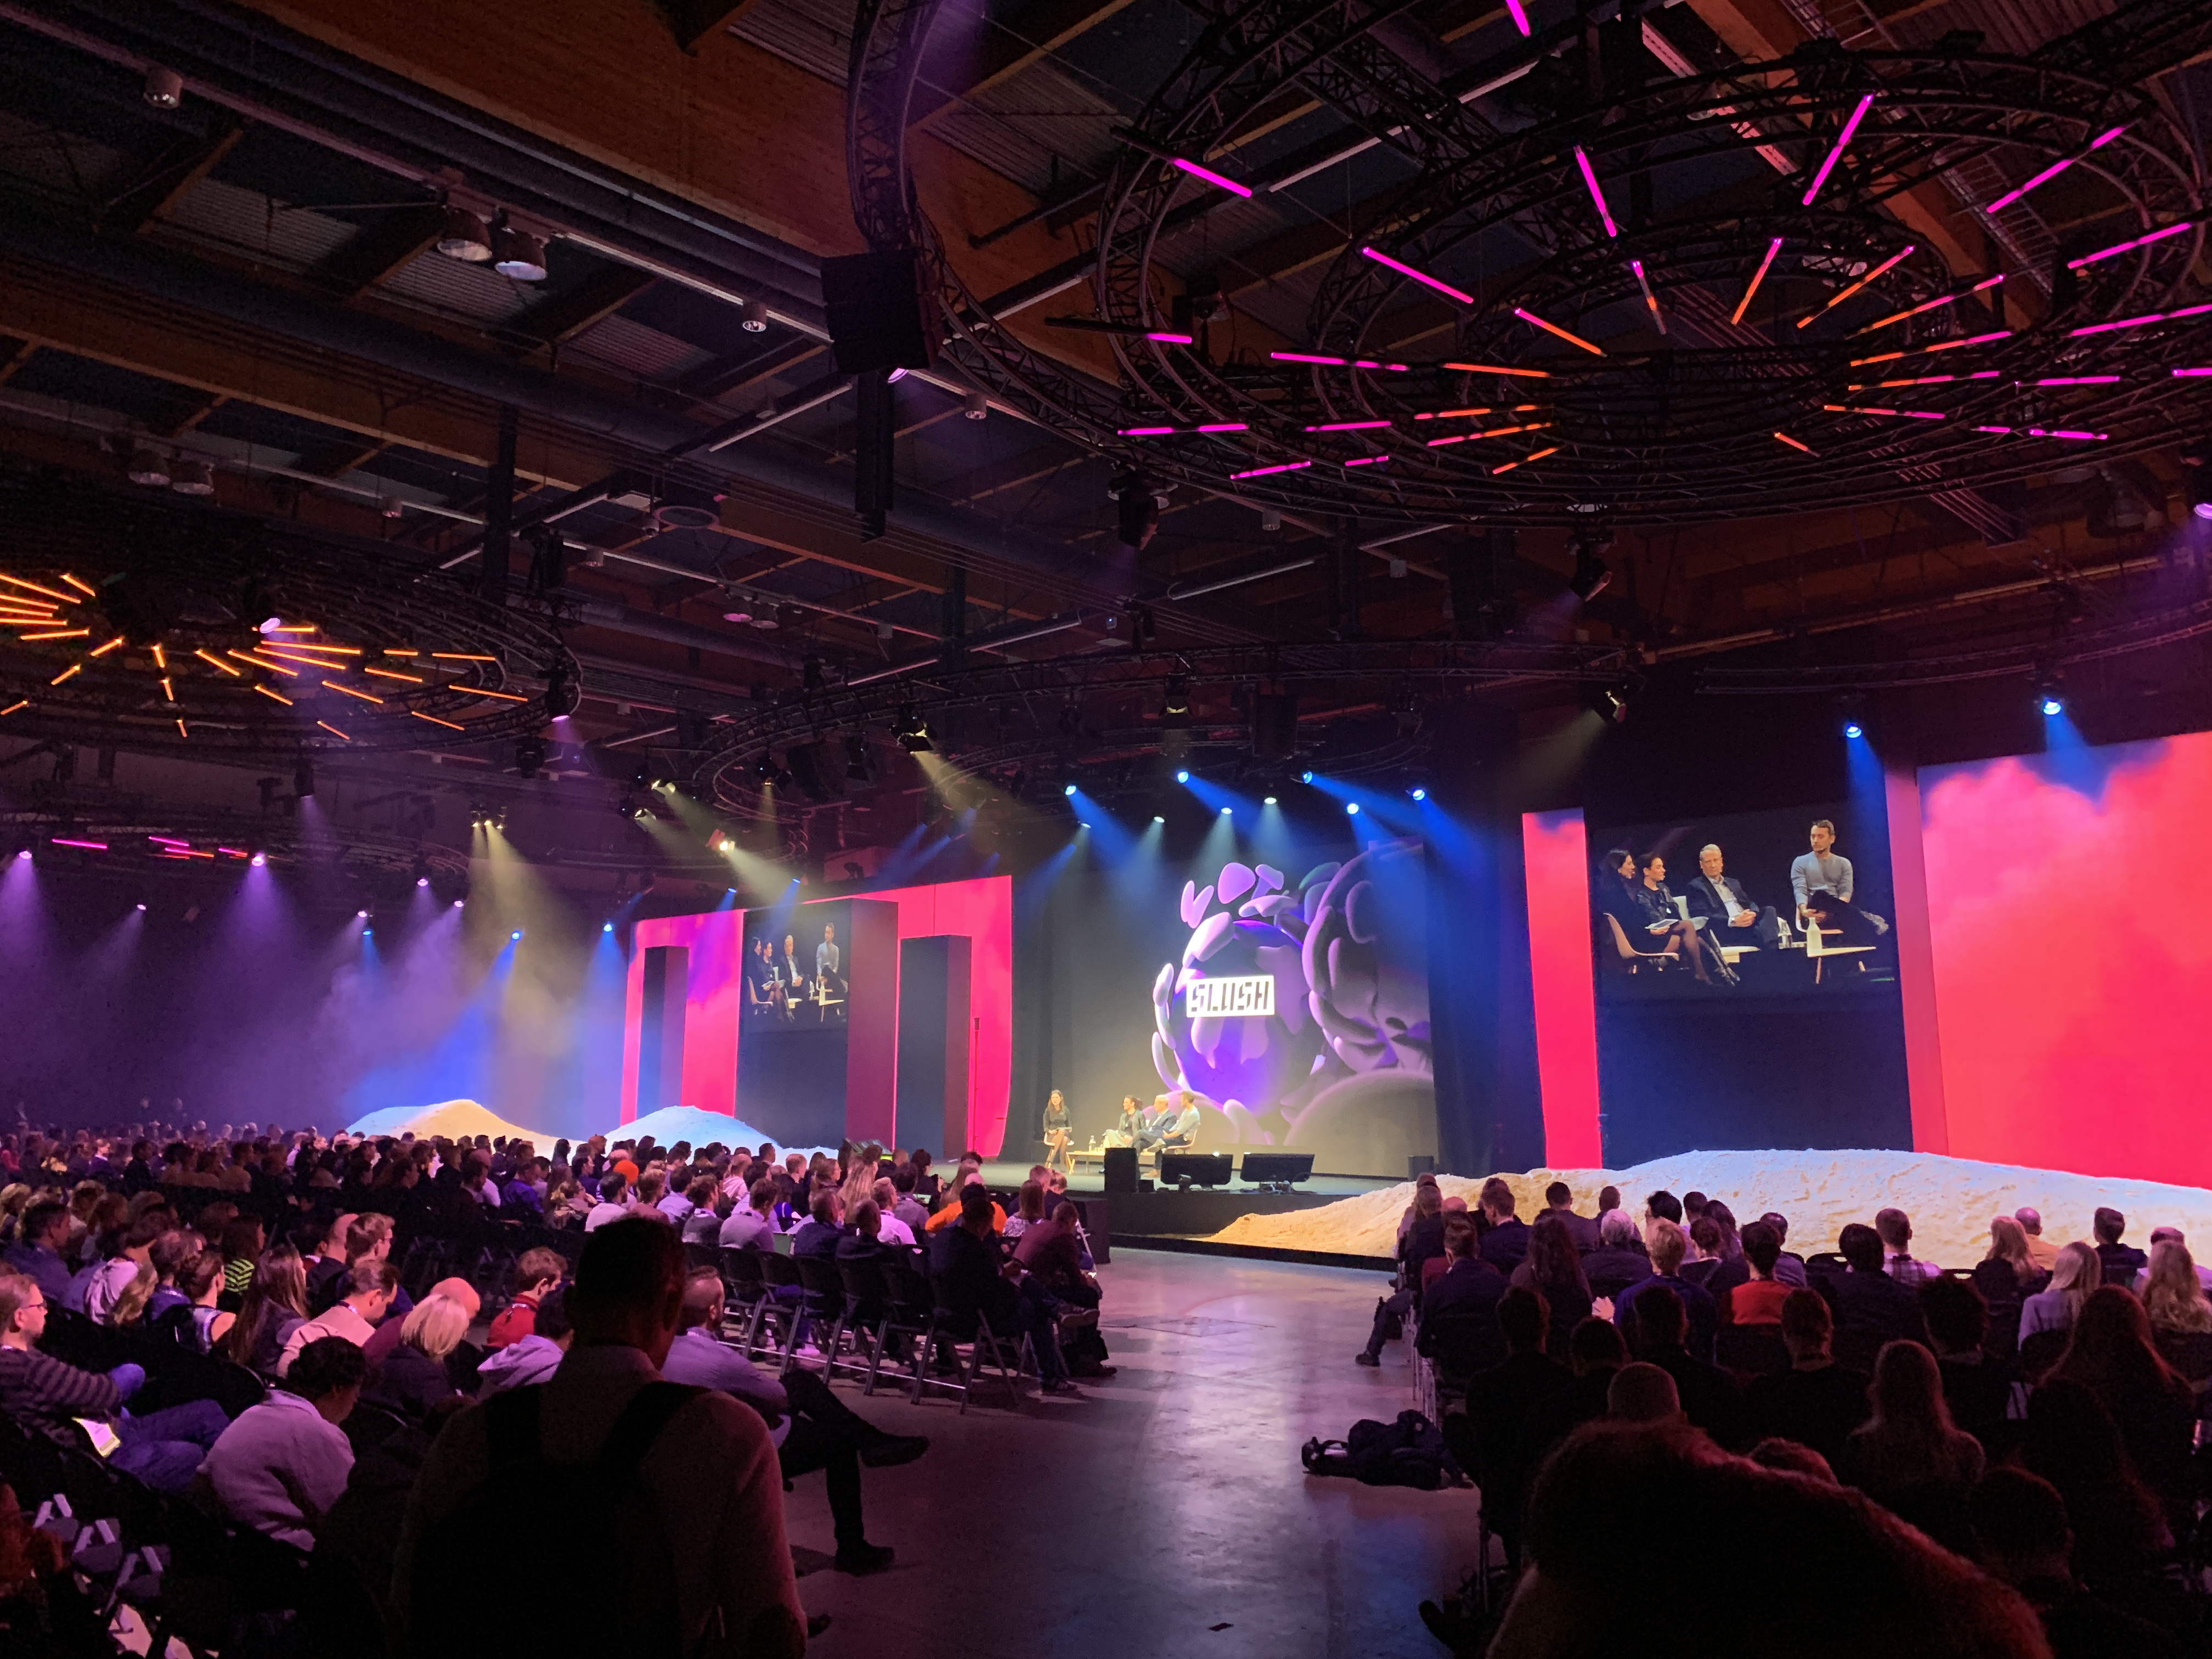 We are still impressed by the rich lighting luminaire, a real showpiece of Slush Conference.